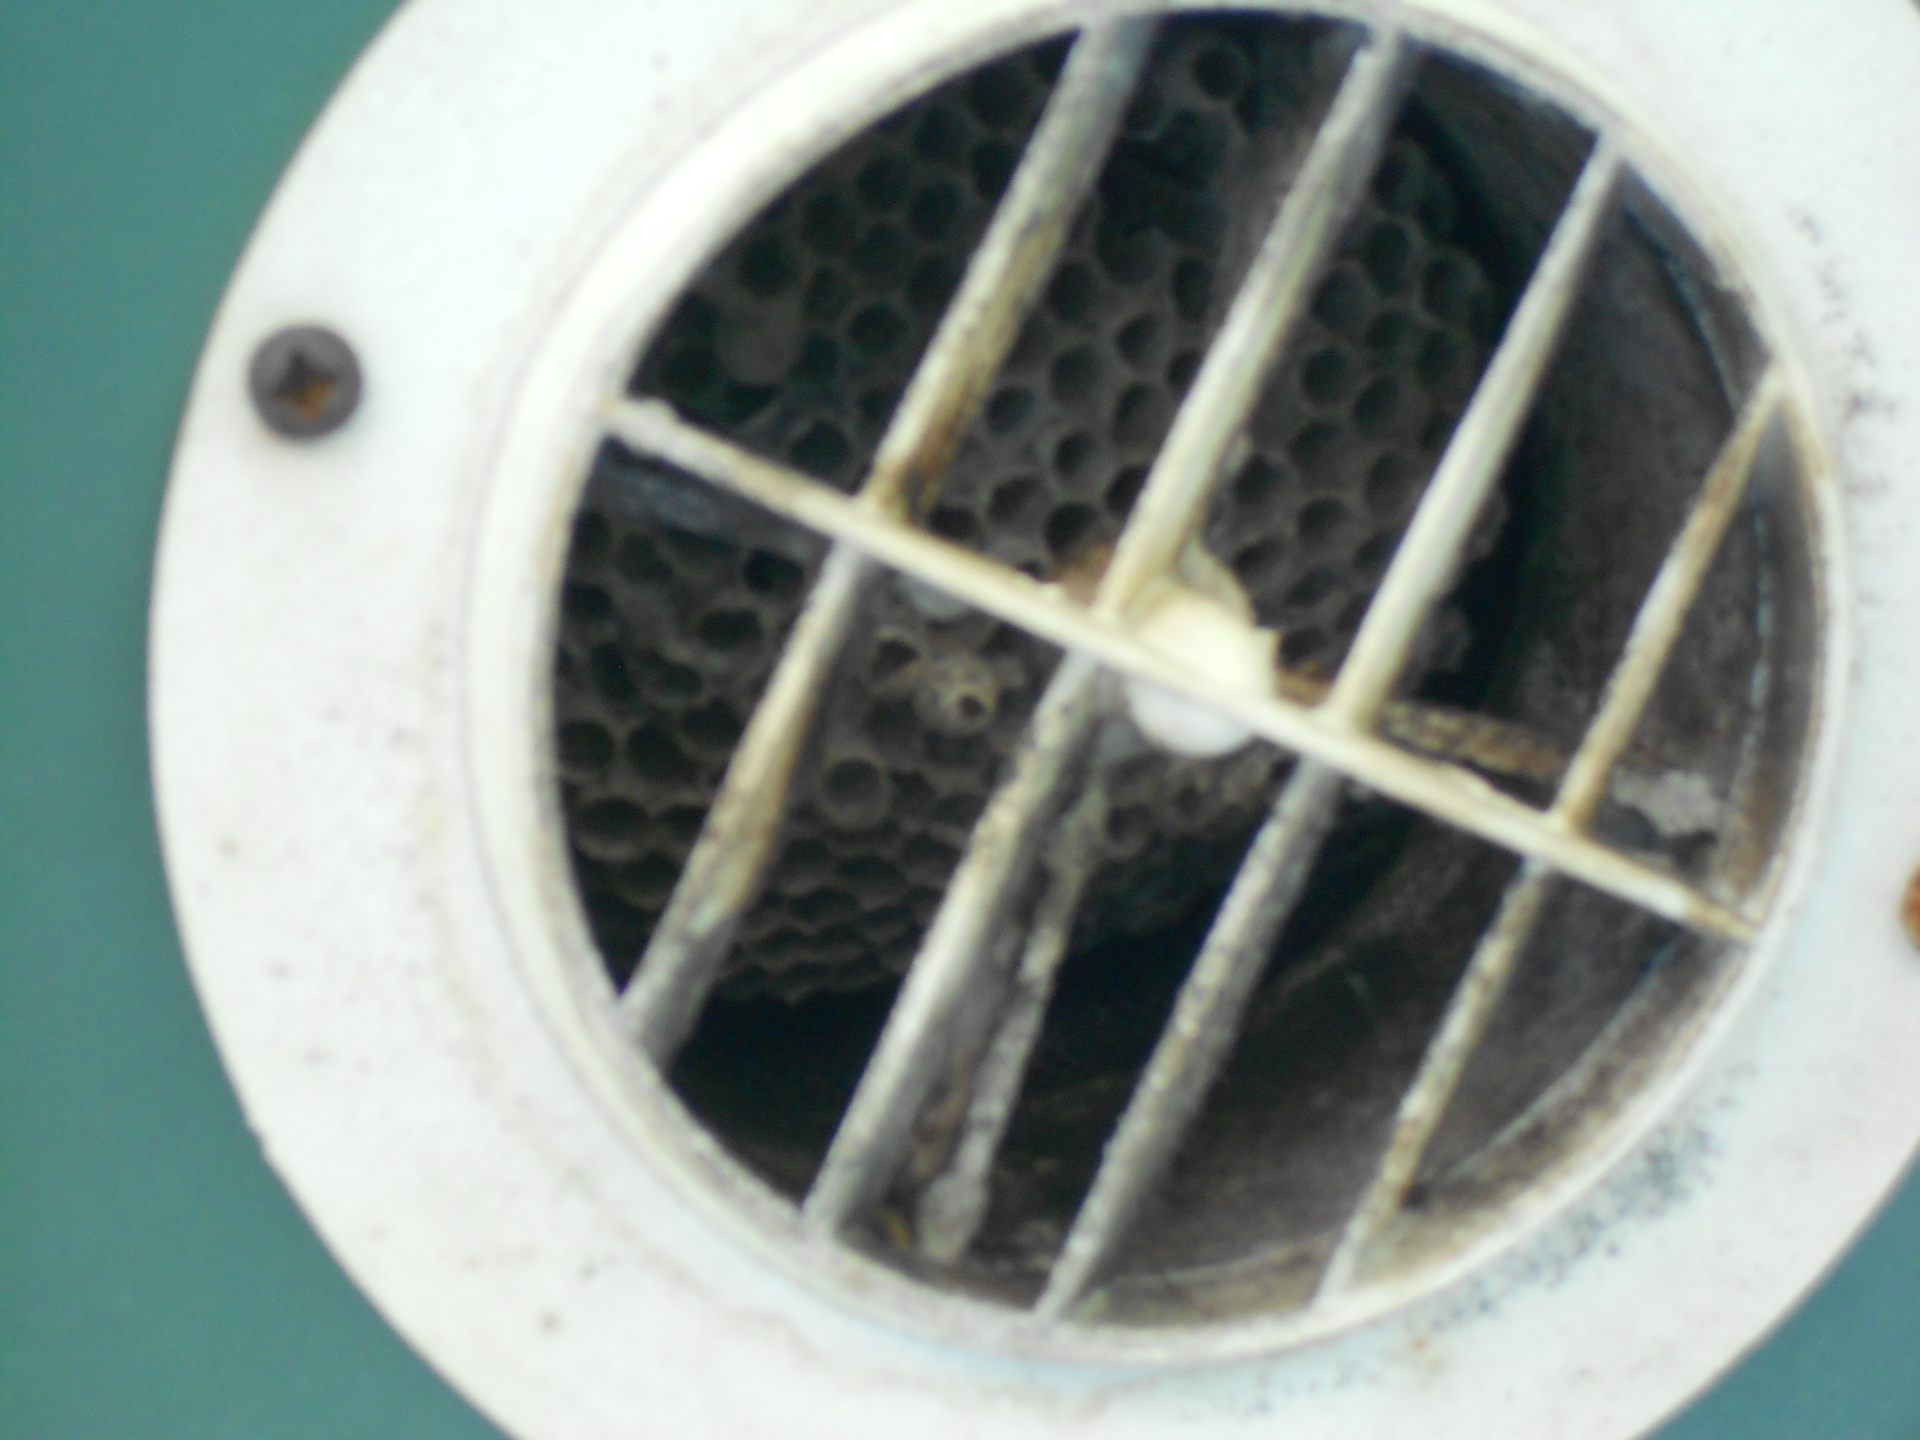 Vent is plugged up with a wasp nest, restricting air flow.